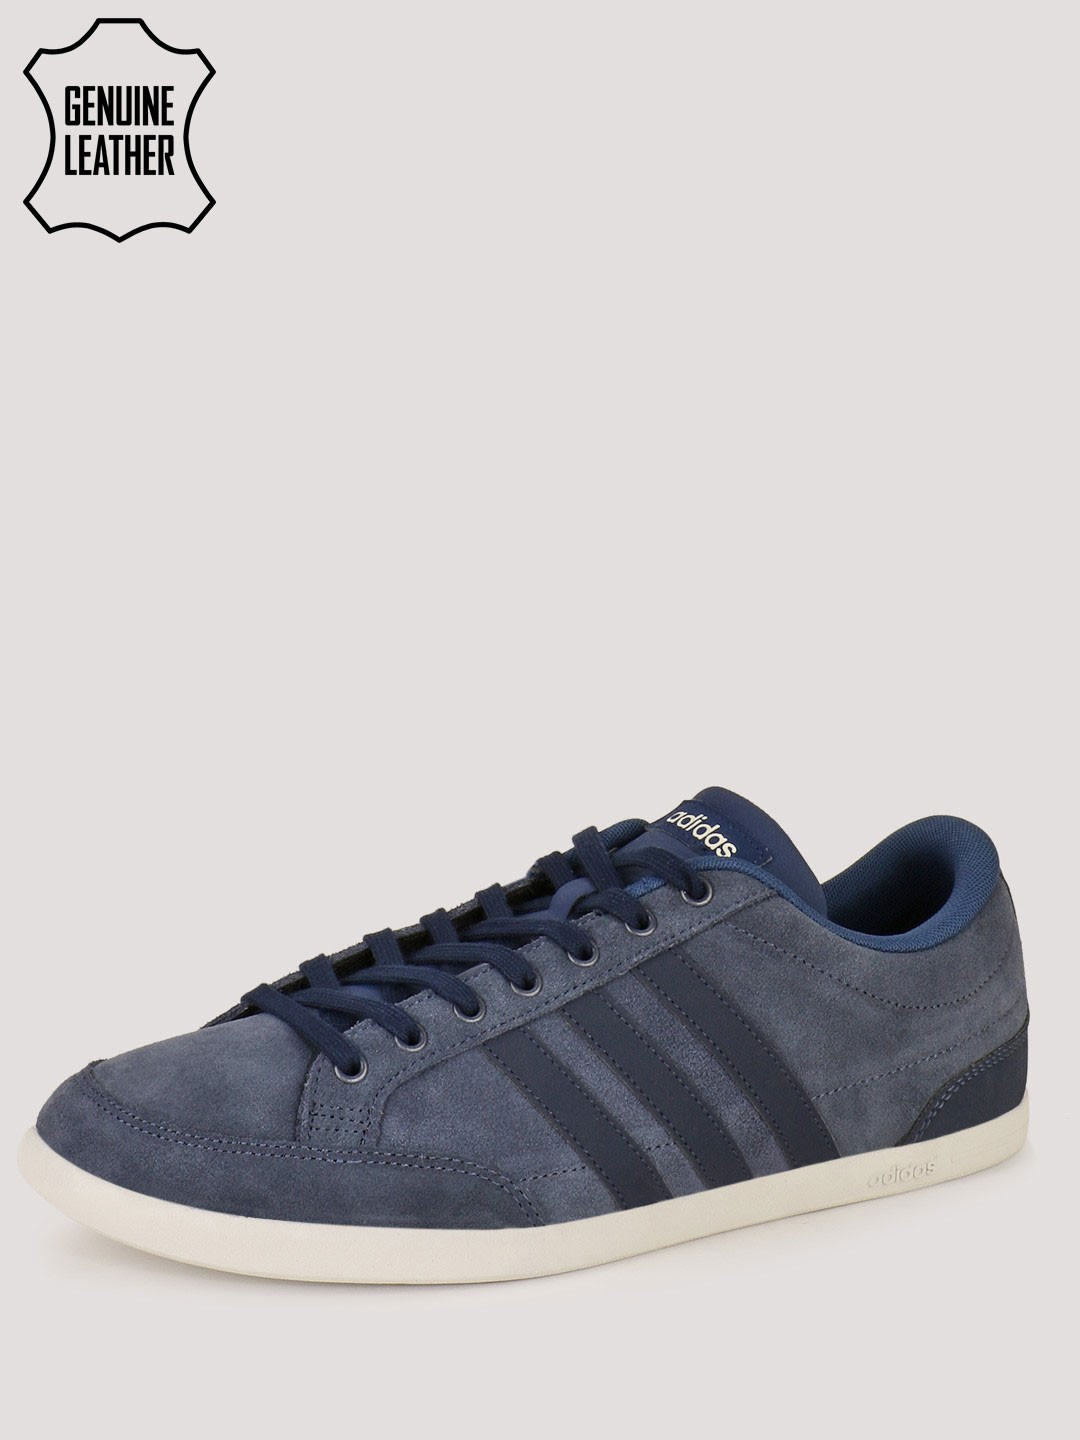 Buy Adidas Neo Navy White Caflaire Sneakers in Suede for